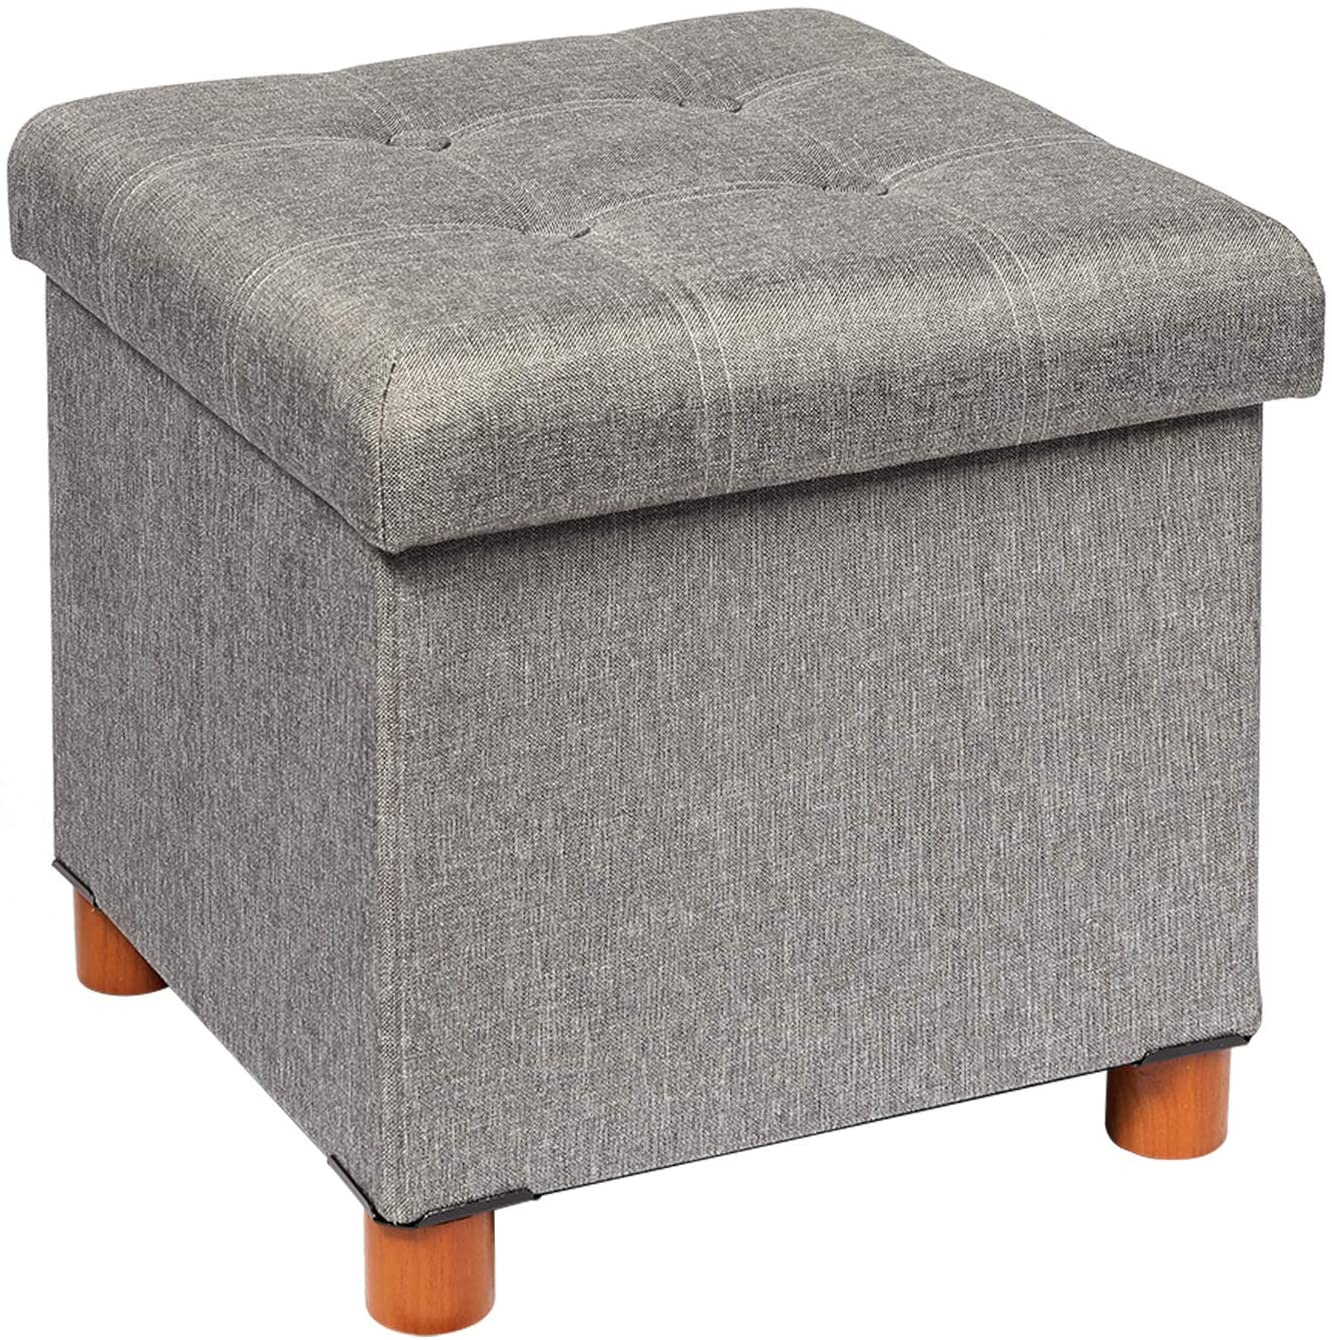 """B FSOBEIIALEO Storage Ottoman with Tray, Foot Stools and Ottomans with Wooden Feet, Storage Cube Seat Linen Grey 15"""""""